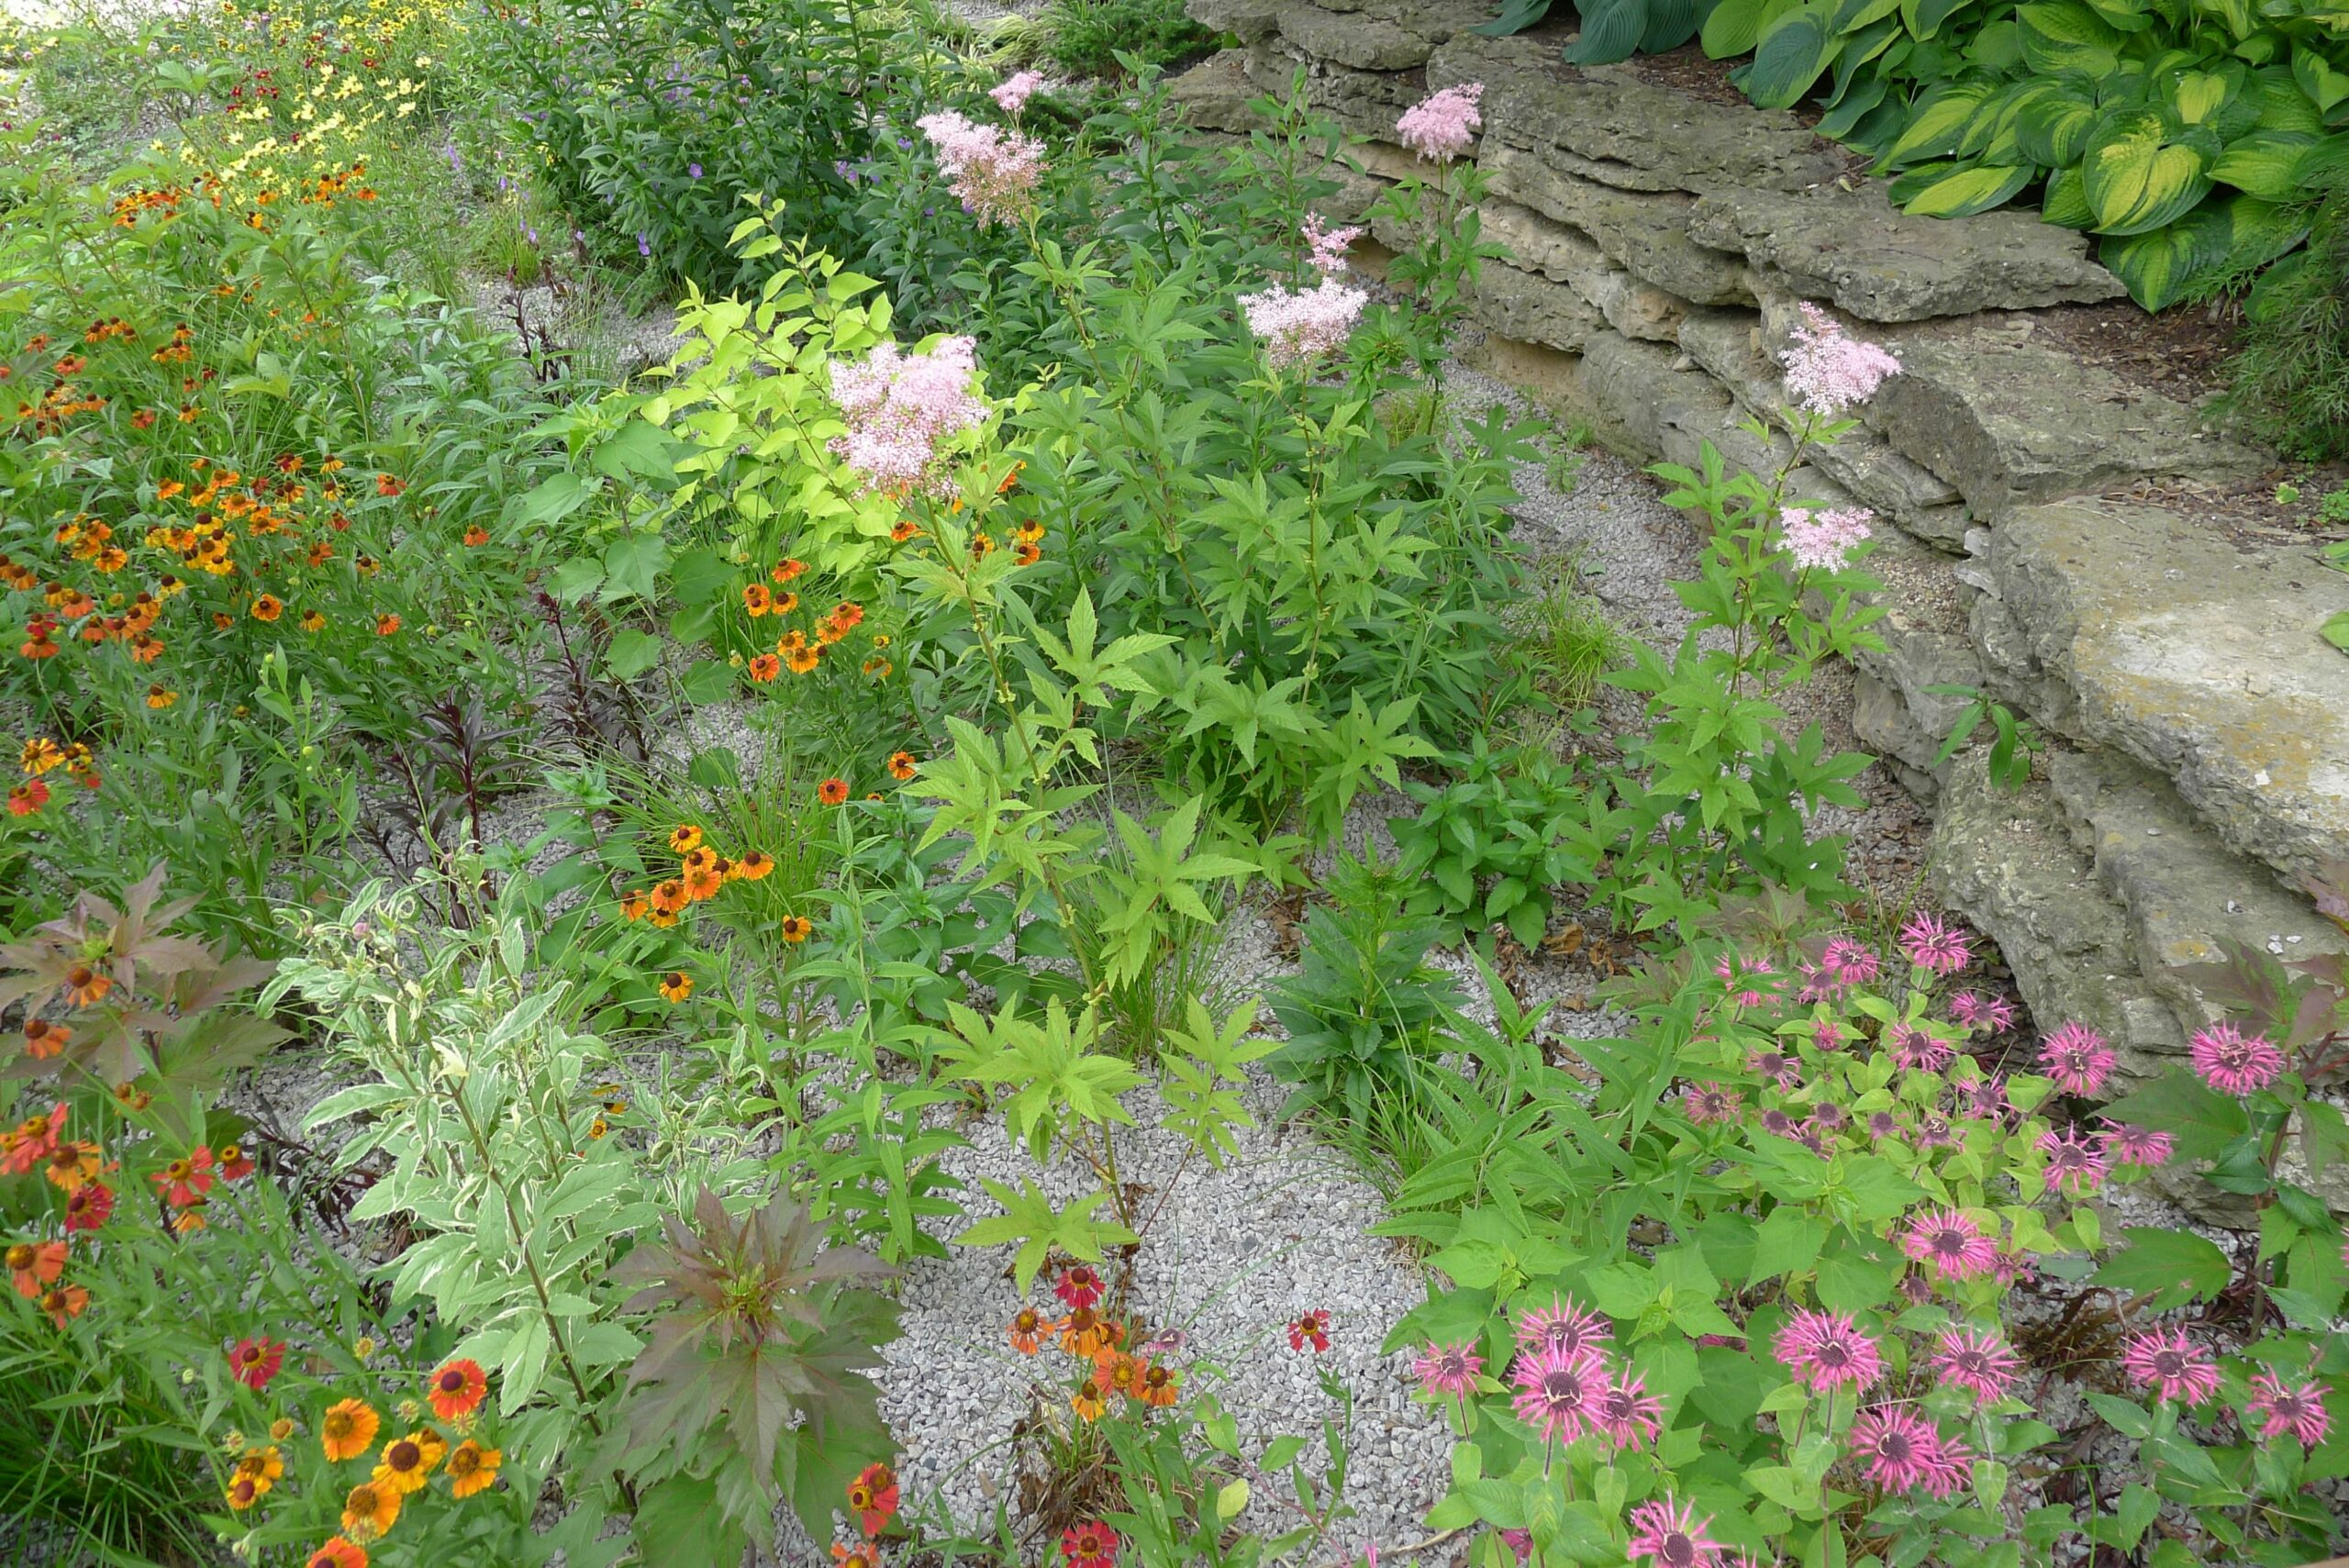 How to Build a Rain Garden | Plants and Designs | The Old Farmer's ...